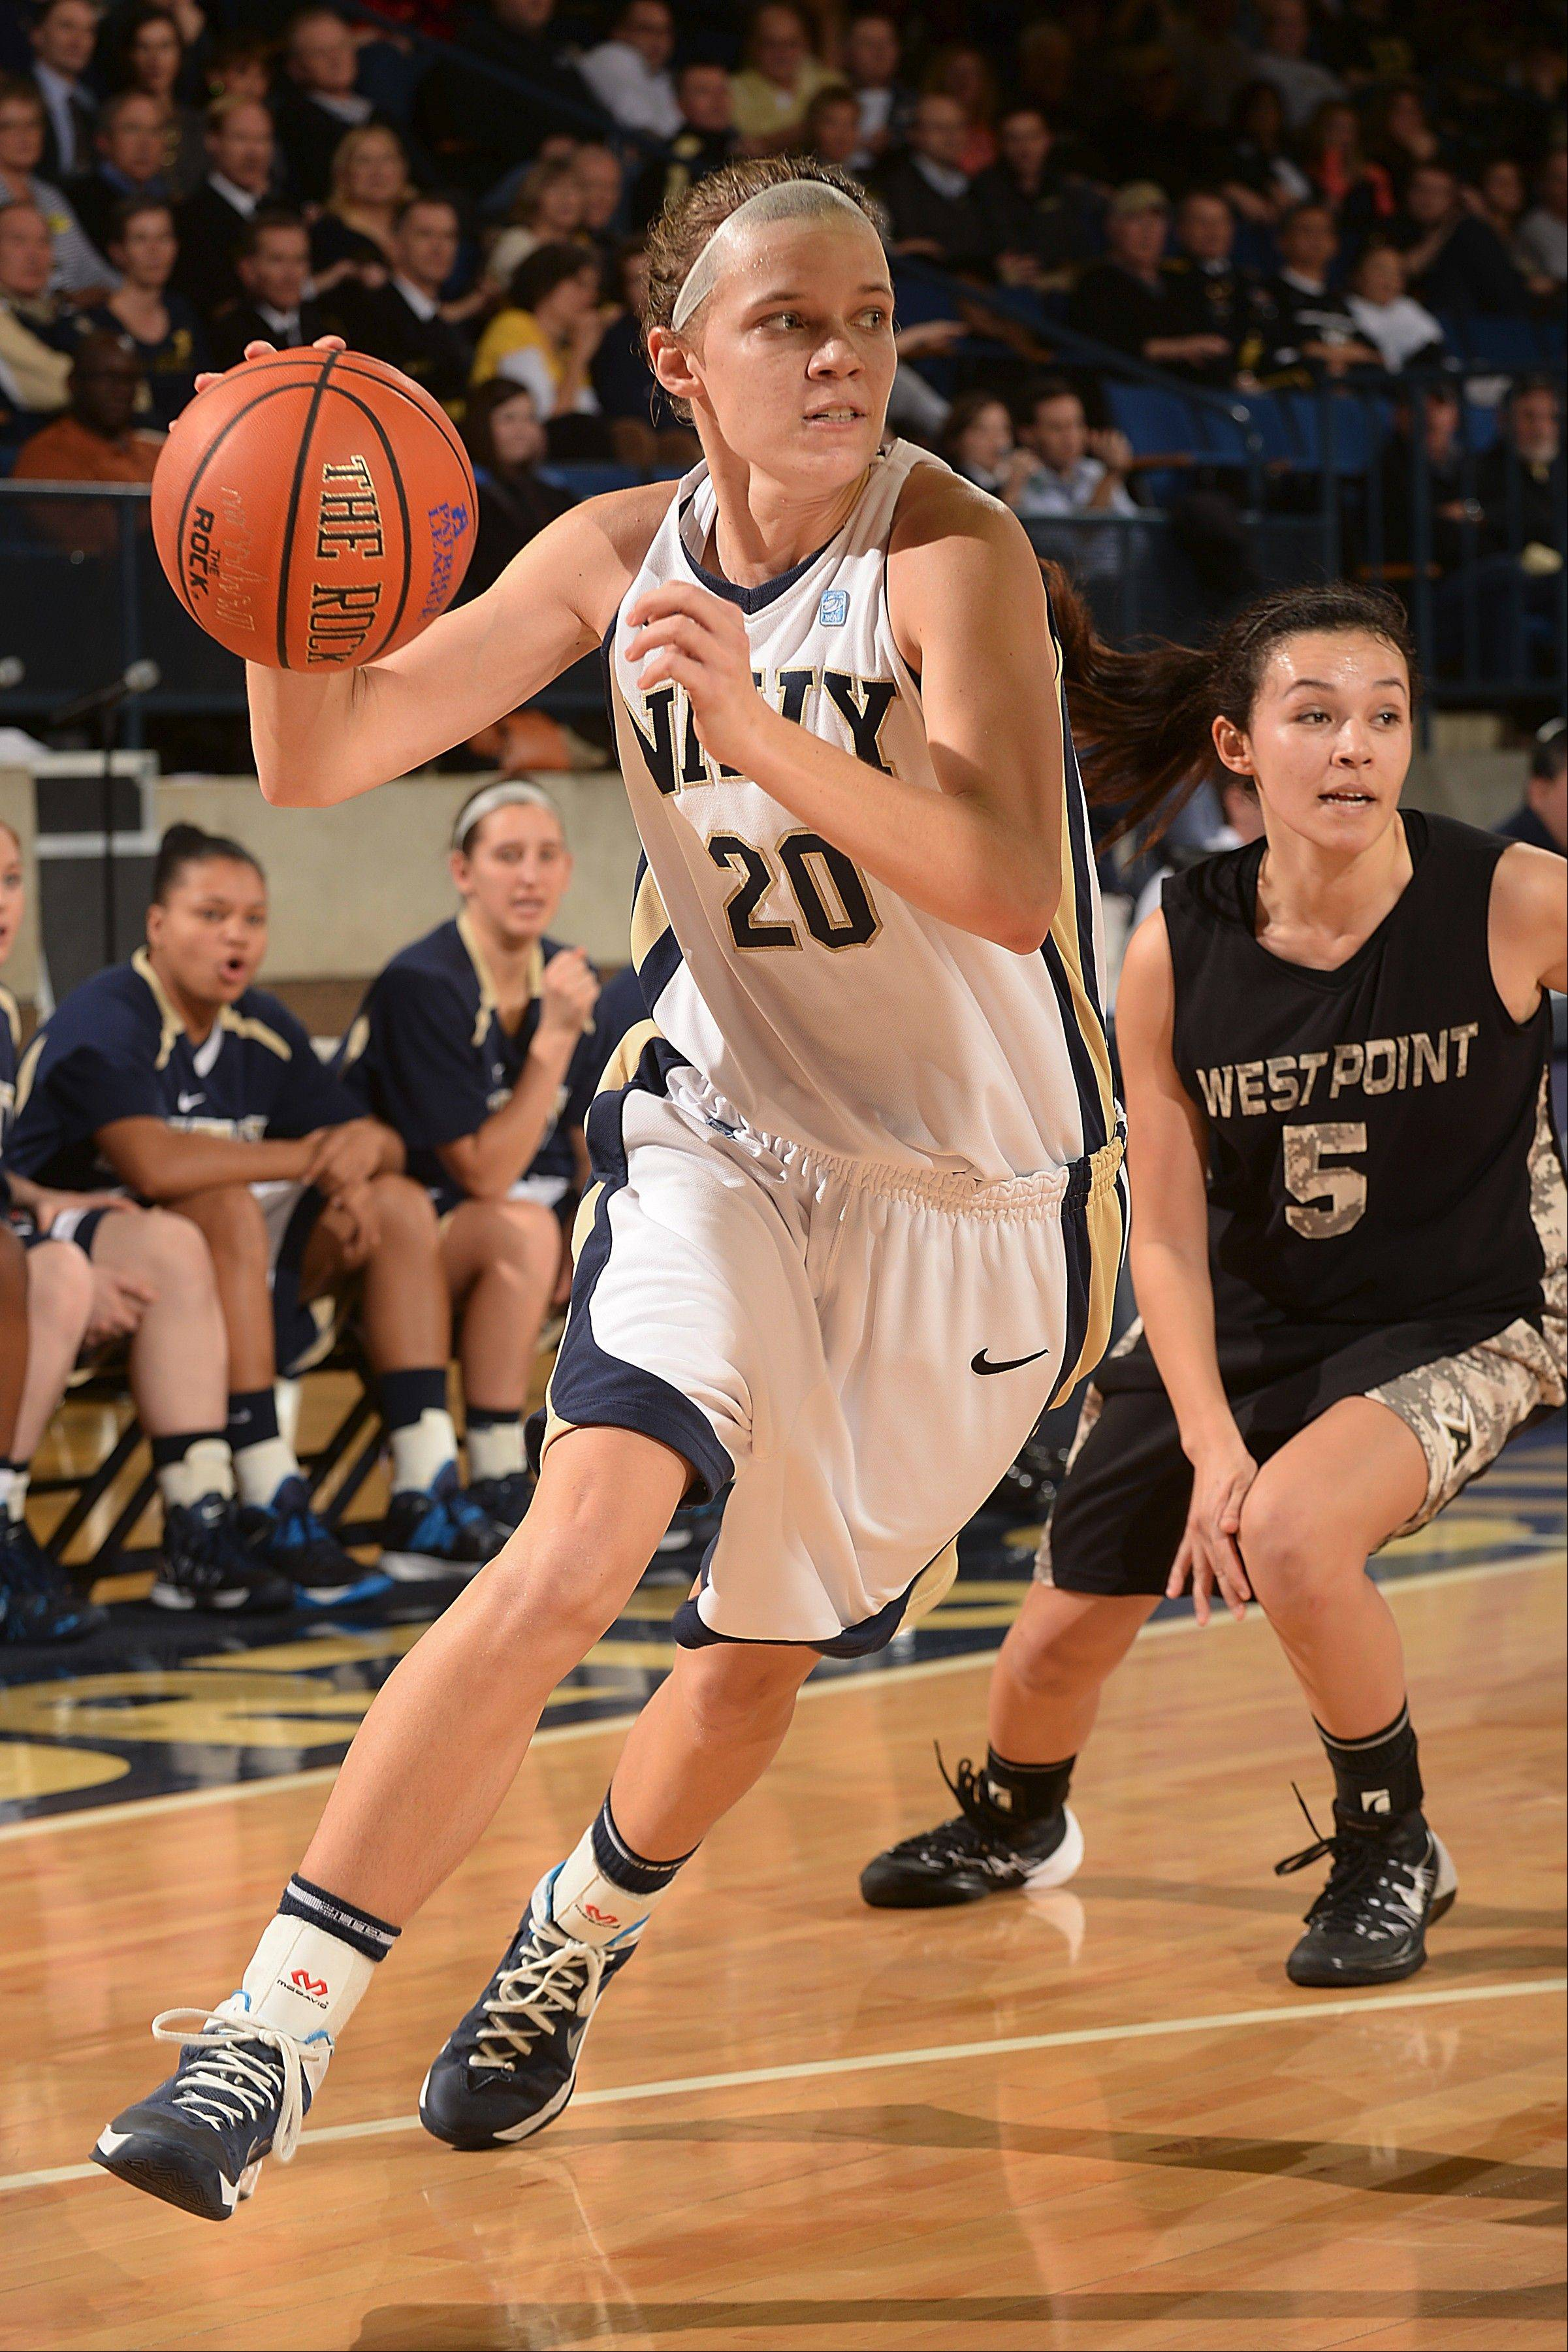 Audrey Bauer, who played for Lake Zurich High School, averages 9.4 points per game for the U.S. Naval Academy.